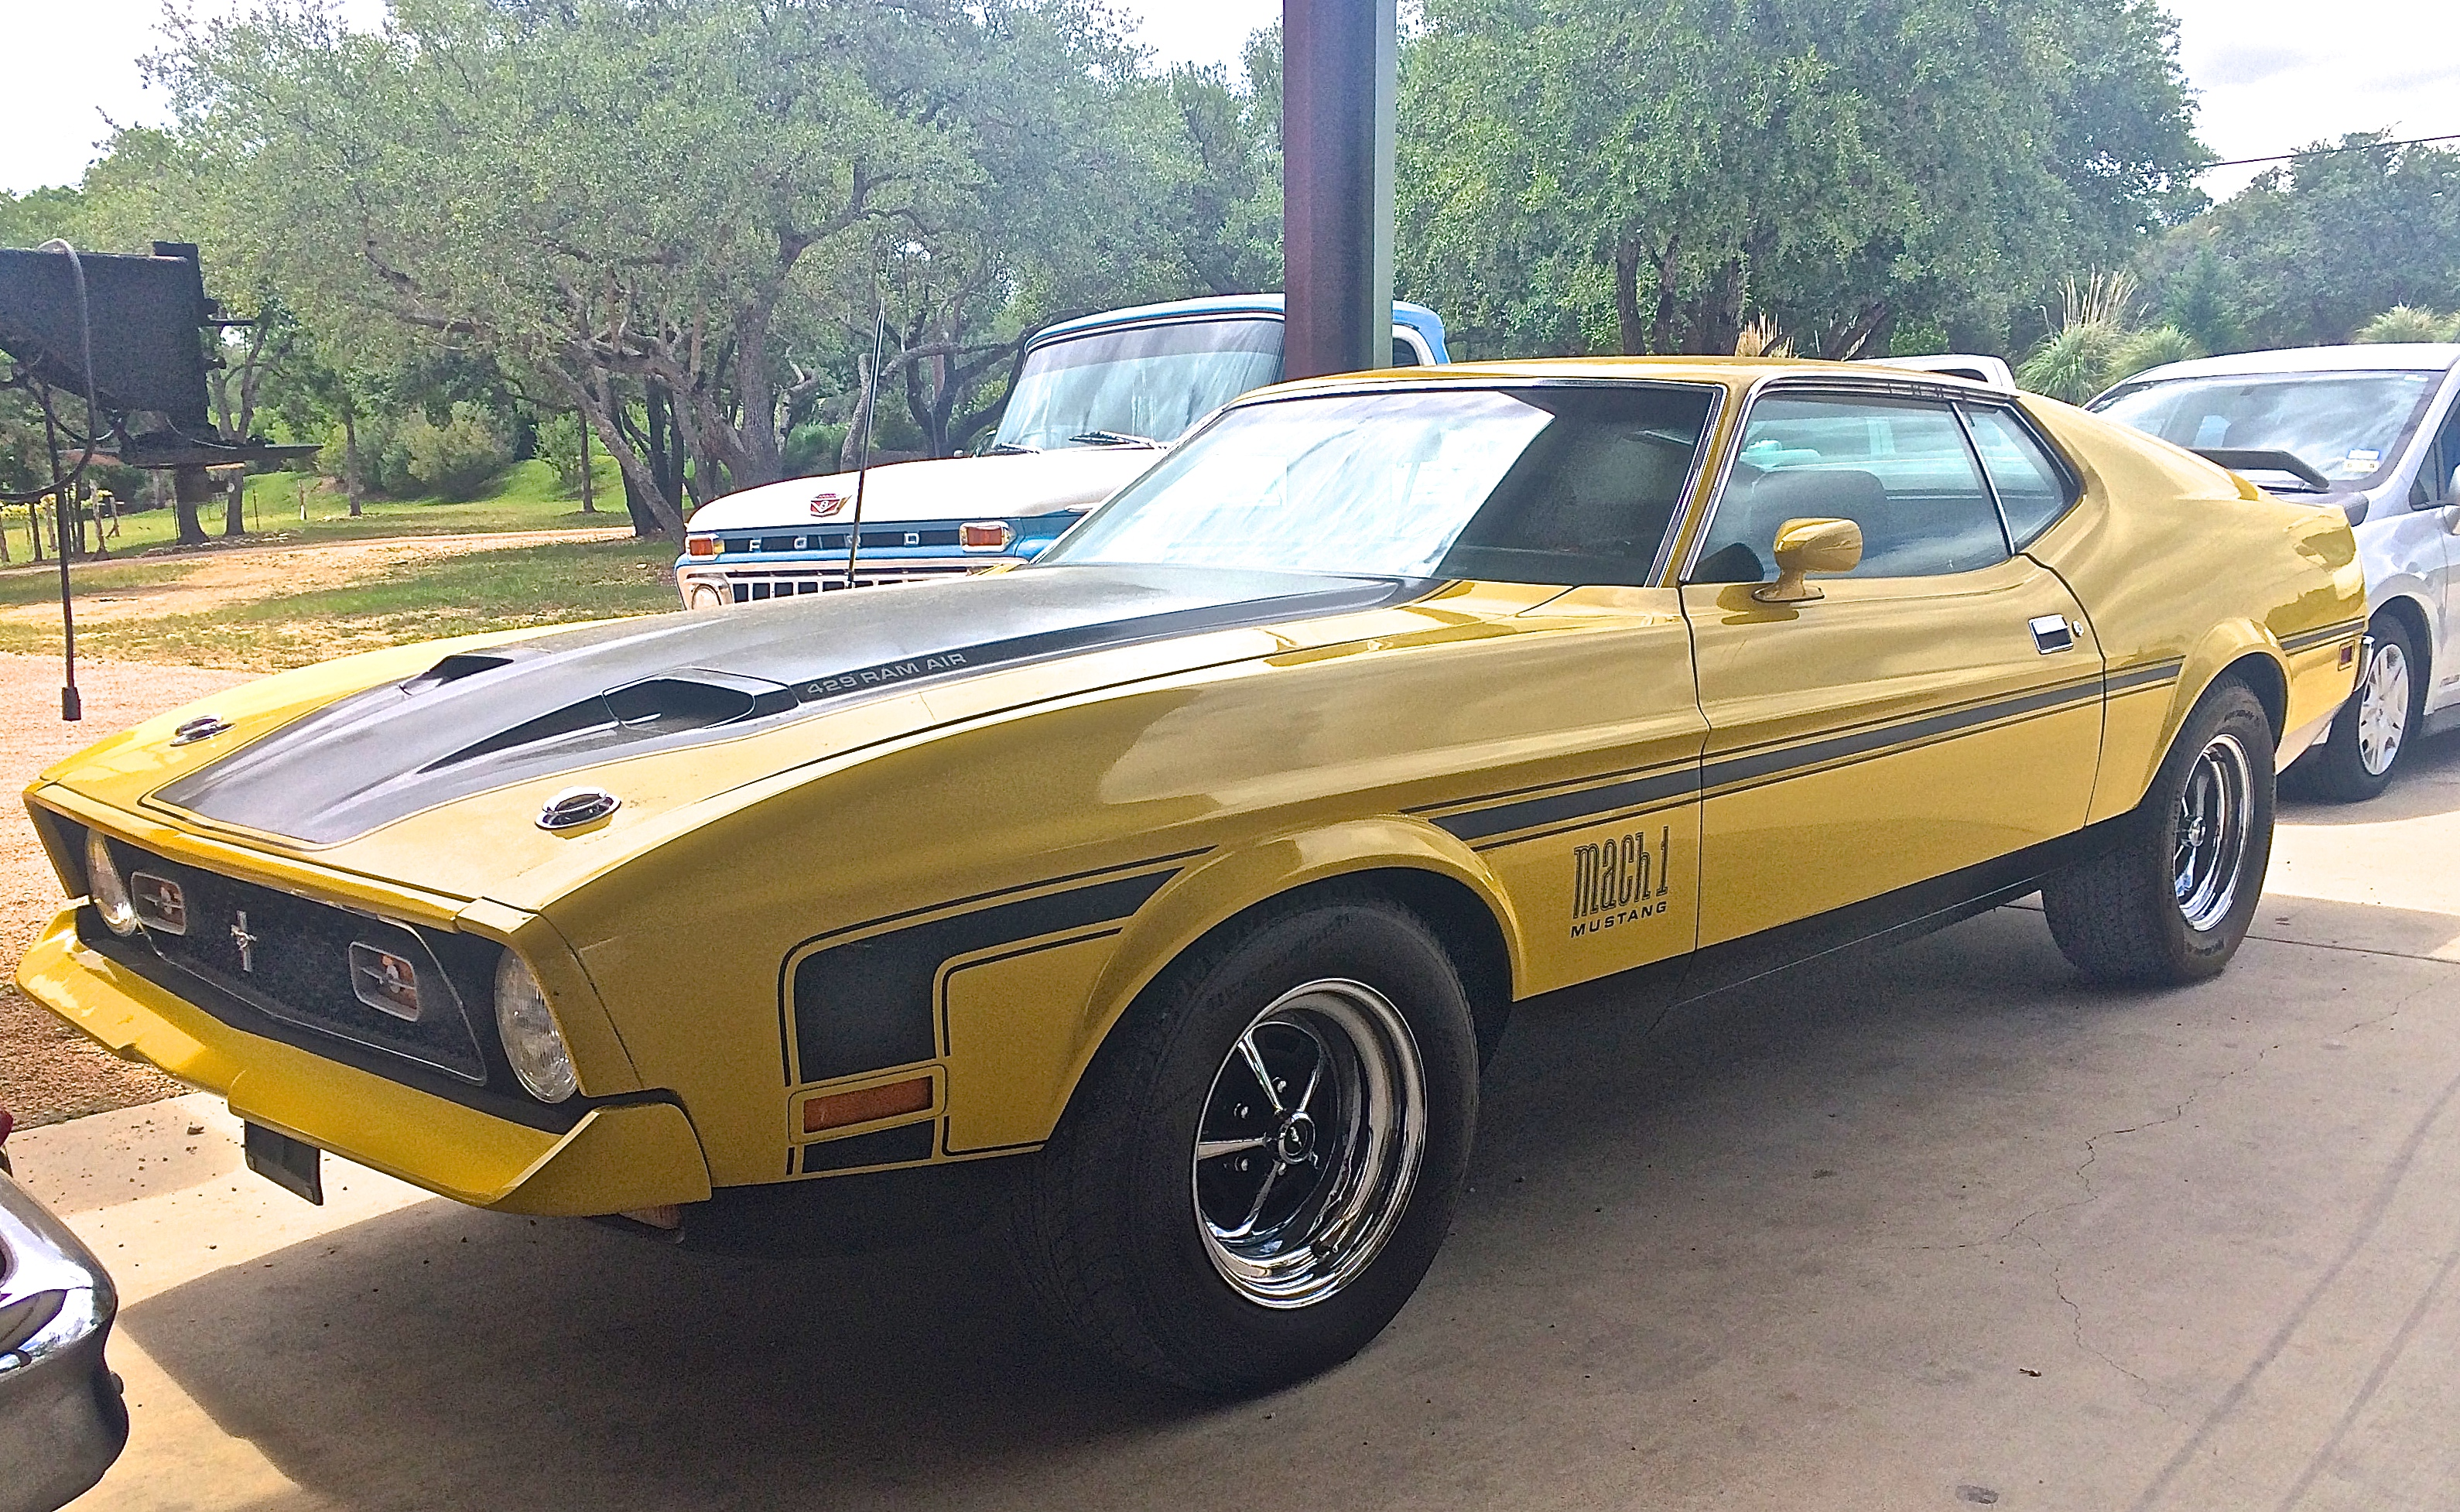 Cars For Sale Austin Tx >> 1971 Ford Mustang Mach 1 429 Ram Air for Sale | ATX Car Pictures | Real Pics from Austin TX ...